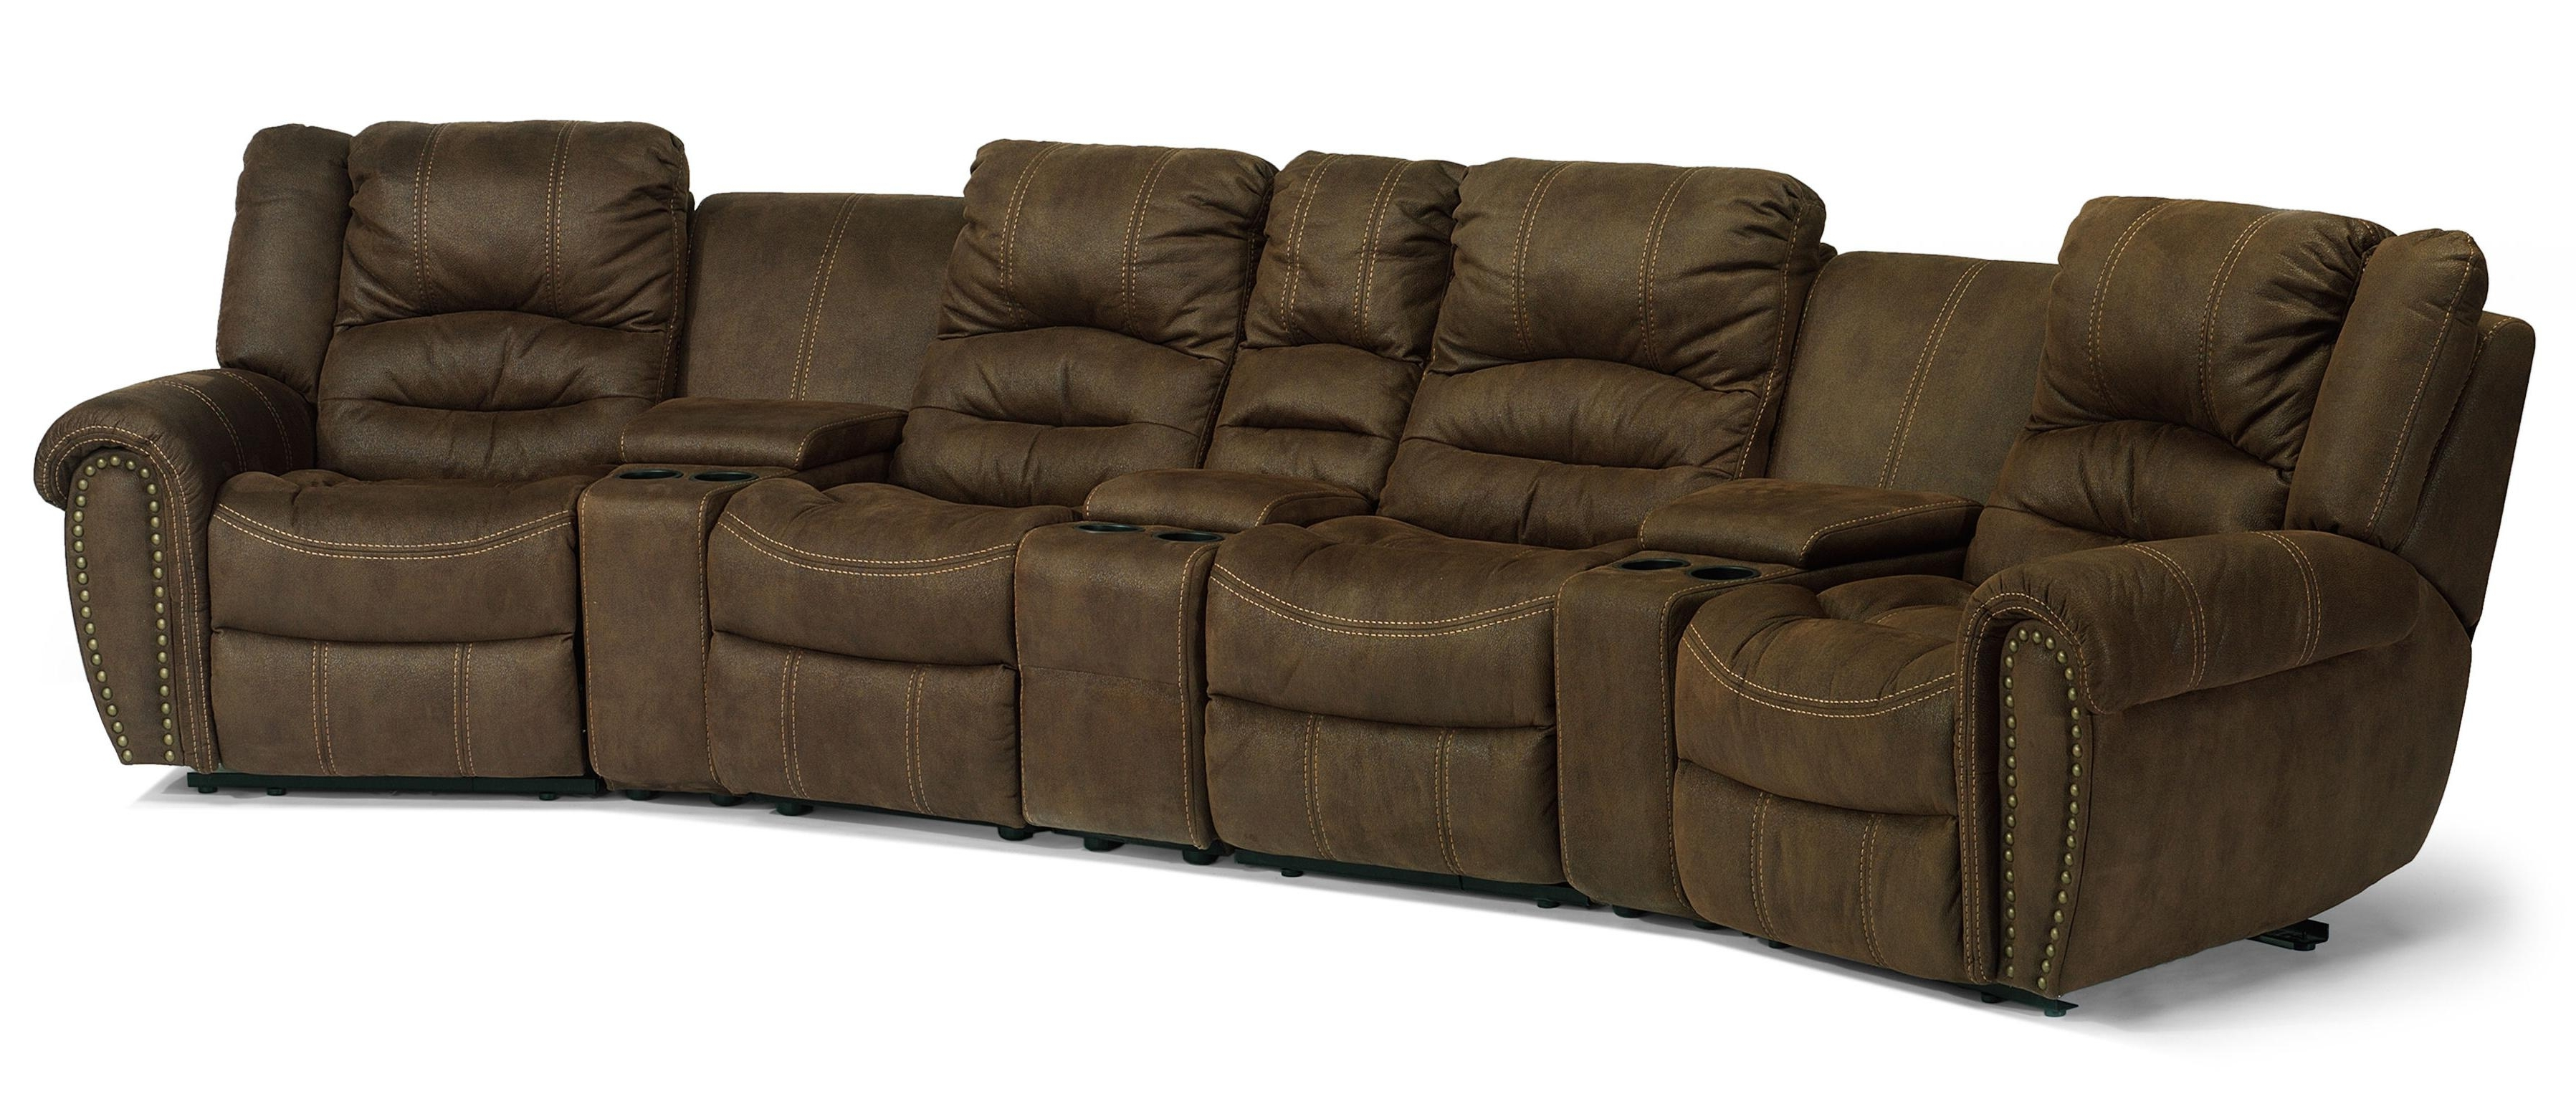 Fashionable Curved Recliner Sofas With Regard To Flexsteel Laudes New Town Reclining Sectional Sofa